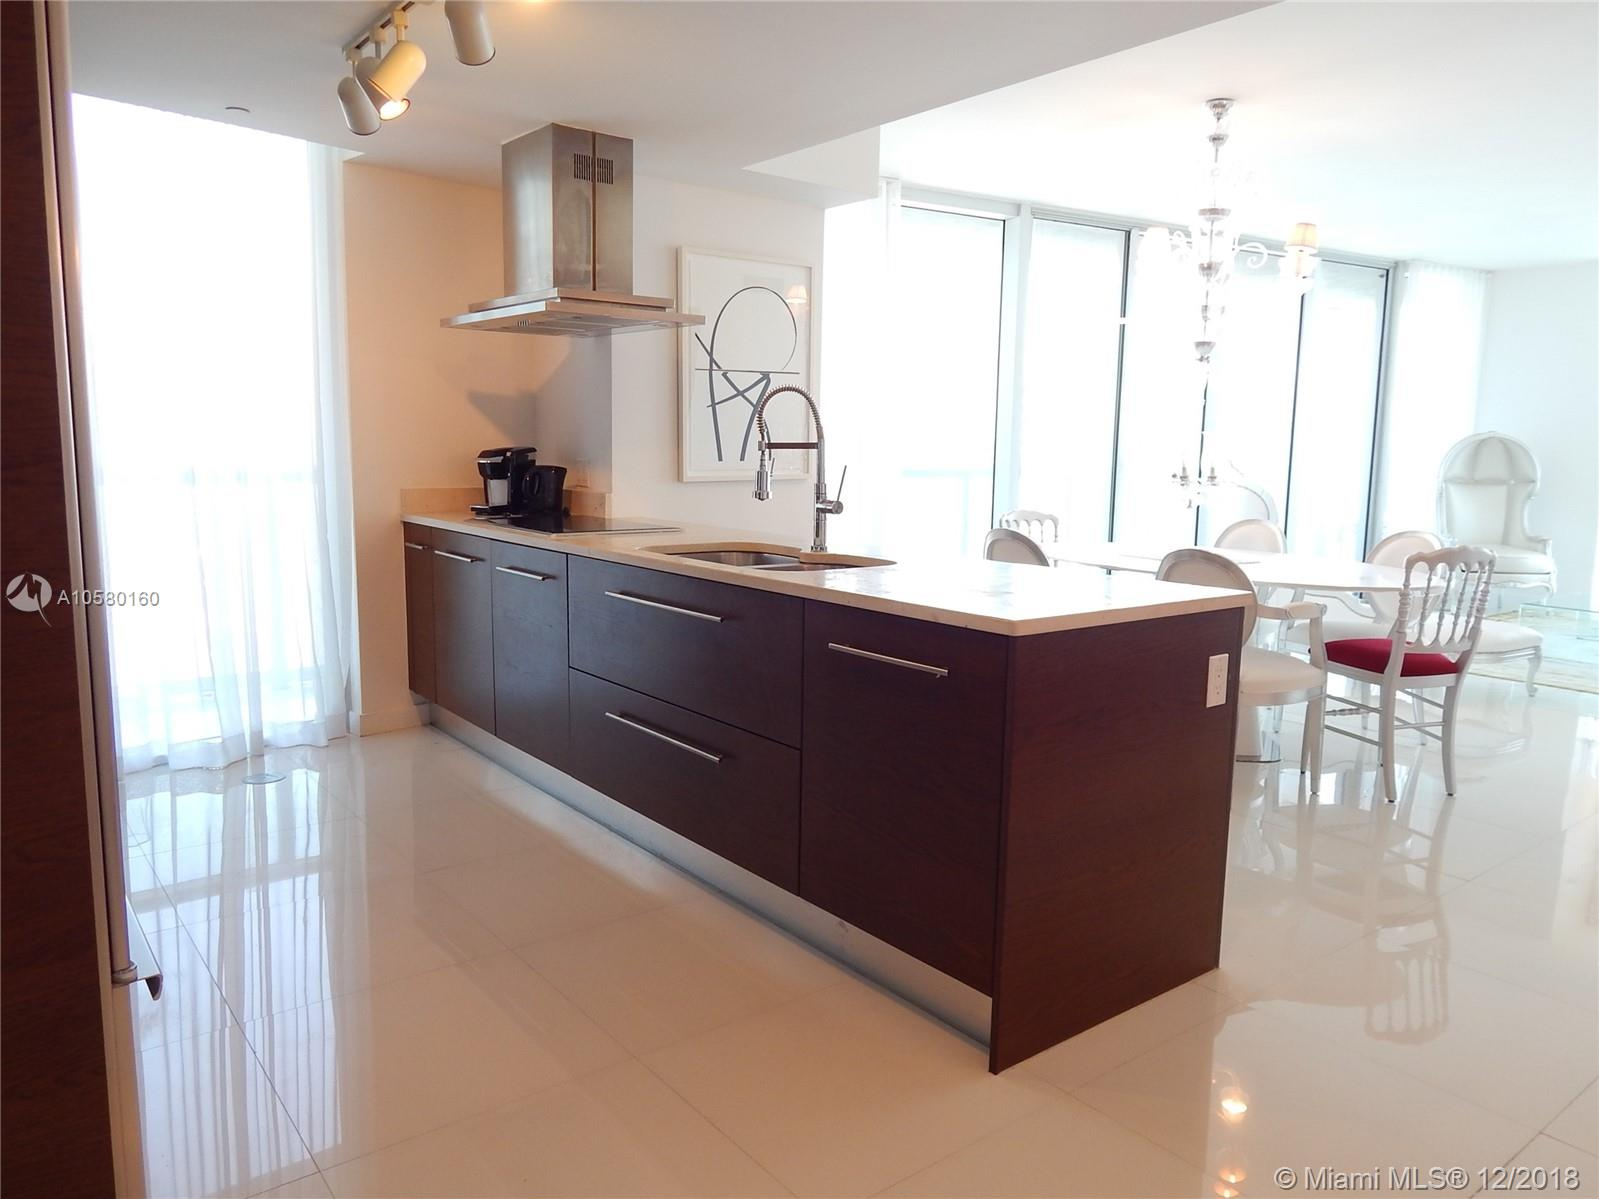 495 Brickell Ave, Miami, FL 33131, Icon Brickell II #3702, Brickell, Miami A10580160 image #3